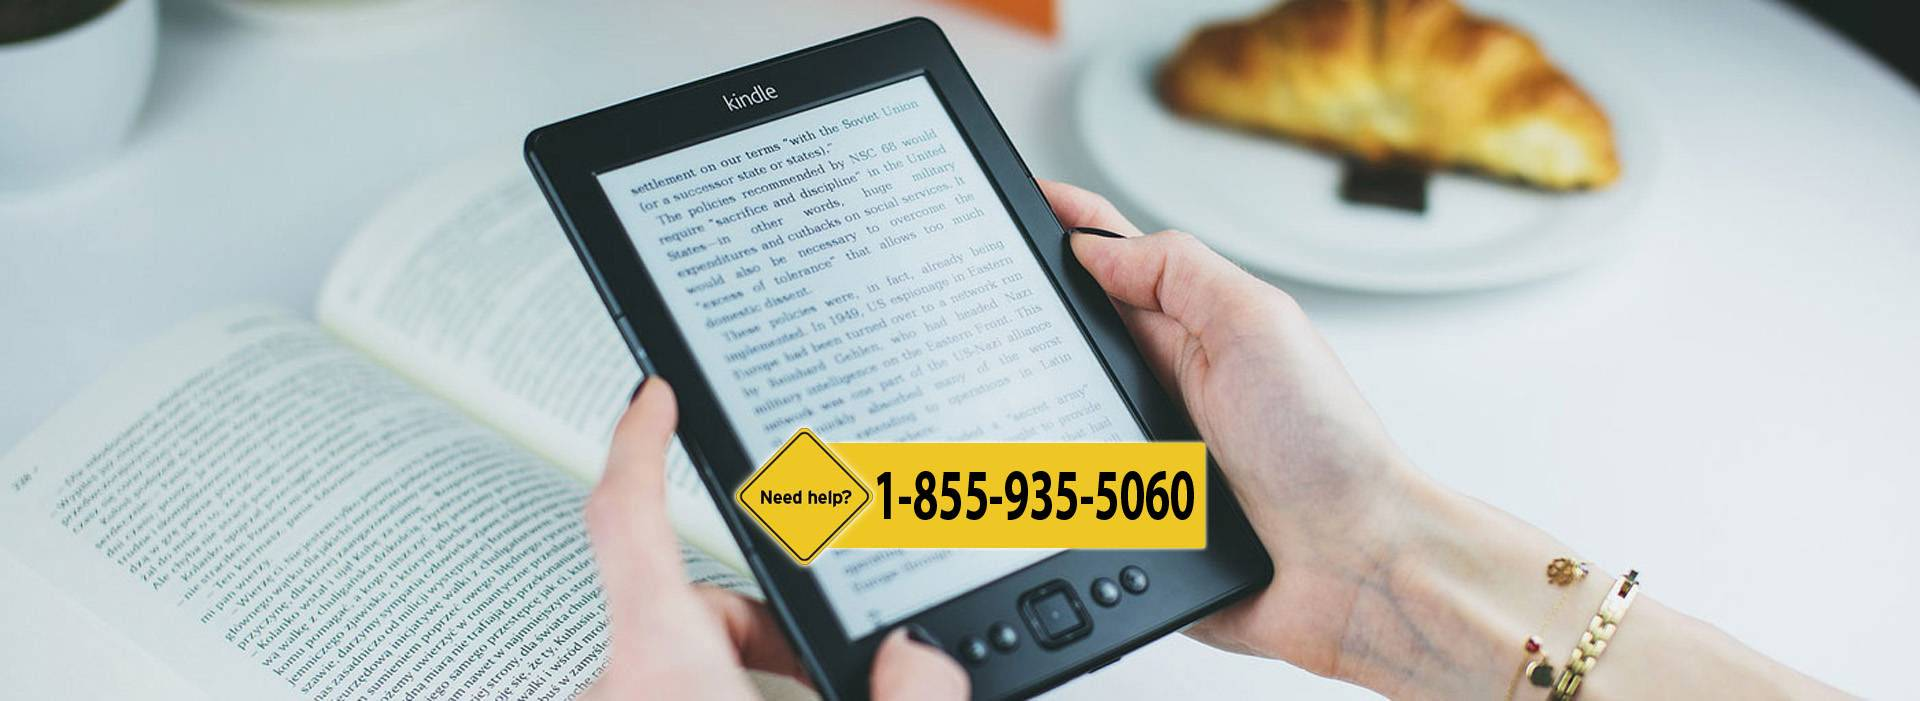 Amazon Kindle Support For Fire Device Call 1-855-935-5060